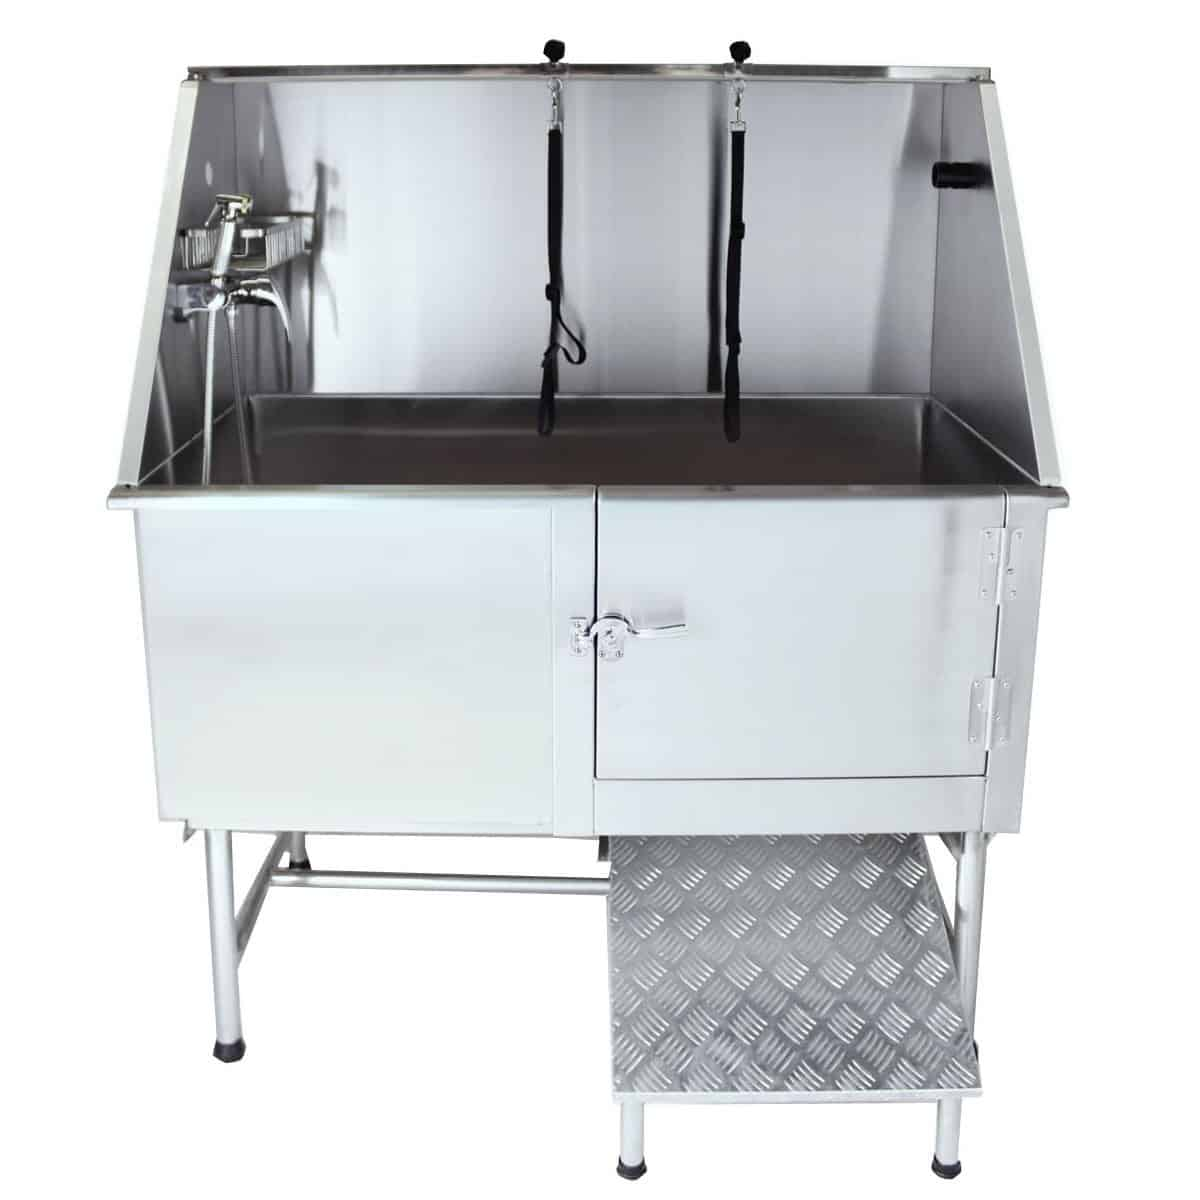 "Flying Pig Grooming 50"" Professional Stainless Steel Pet Dog Grooming Bath Tub with Faucet Walk-in Ramp & Accessories"